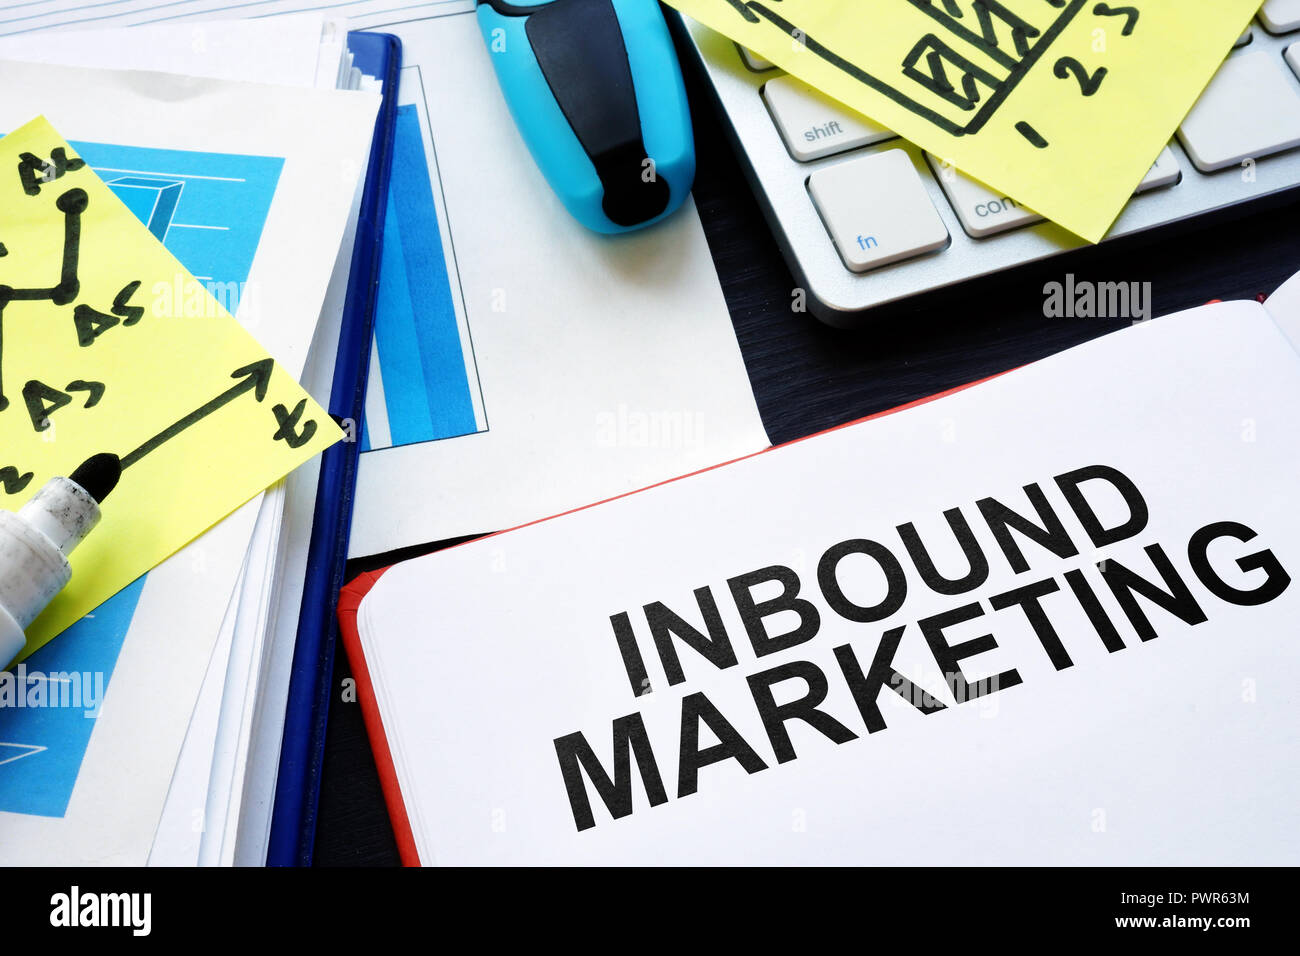 Inbound marketing. Book, reports and pen on table. - Stock Image